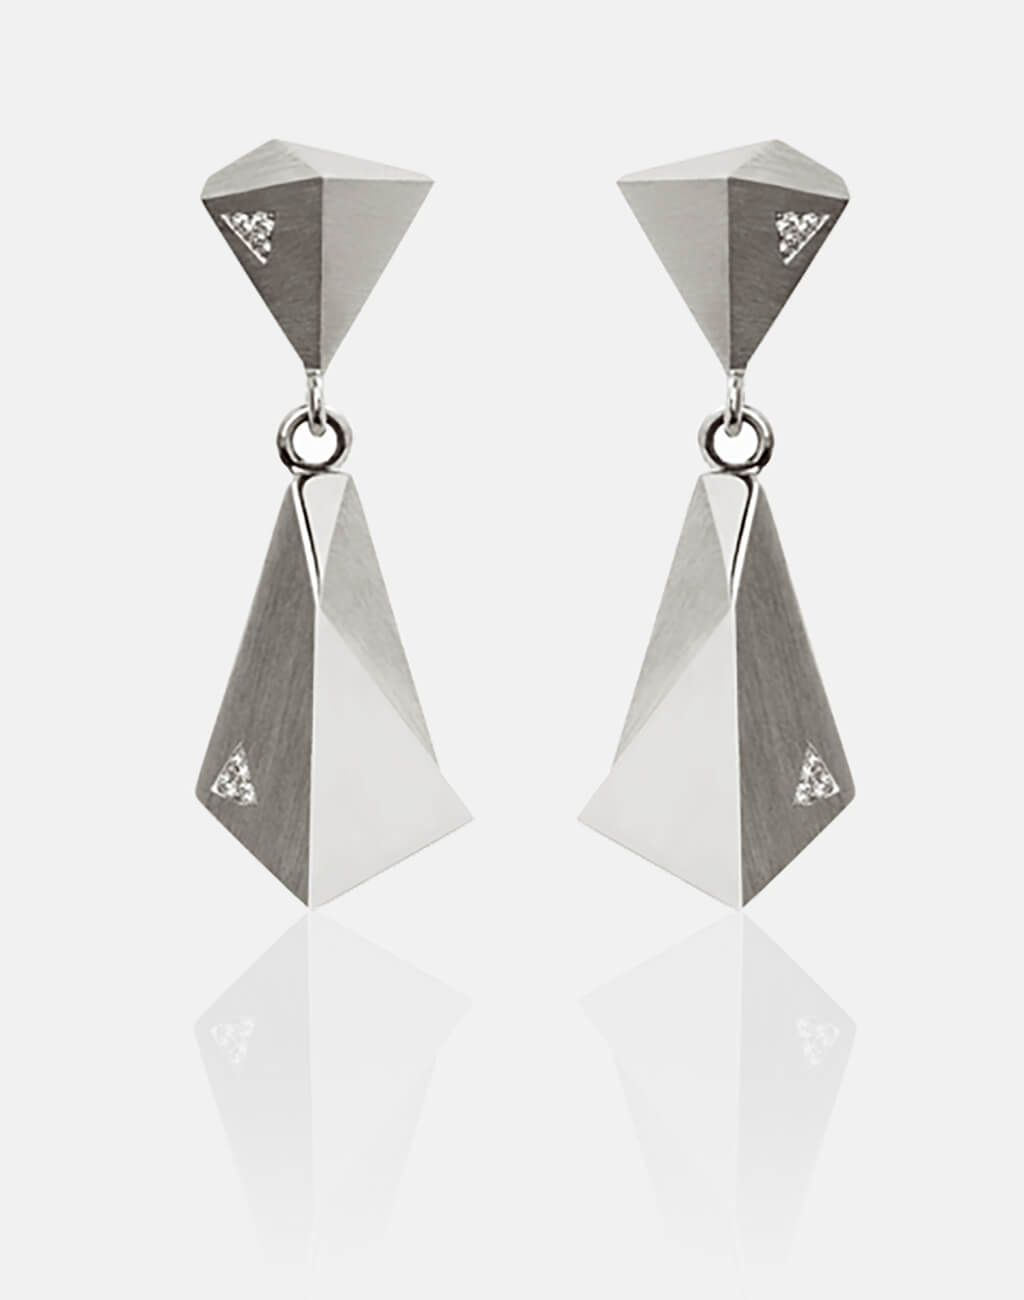 Stealth | Ohrringe, Ohrhänger, 950/- Platin, 12 Brillanten, Diamanten | earrings, 950/- platinum, diamonds | SYNO-Schmuck.com